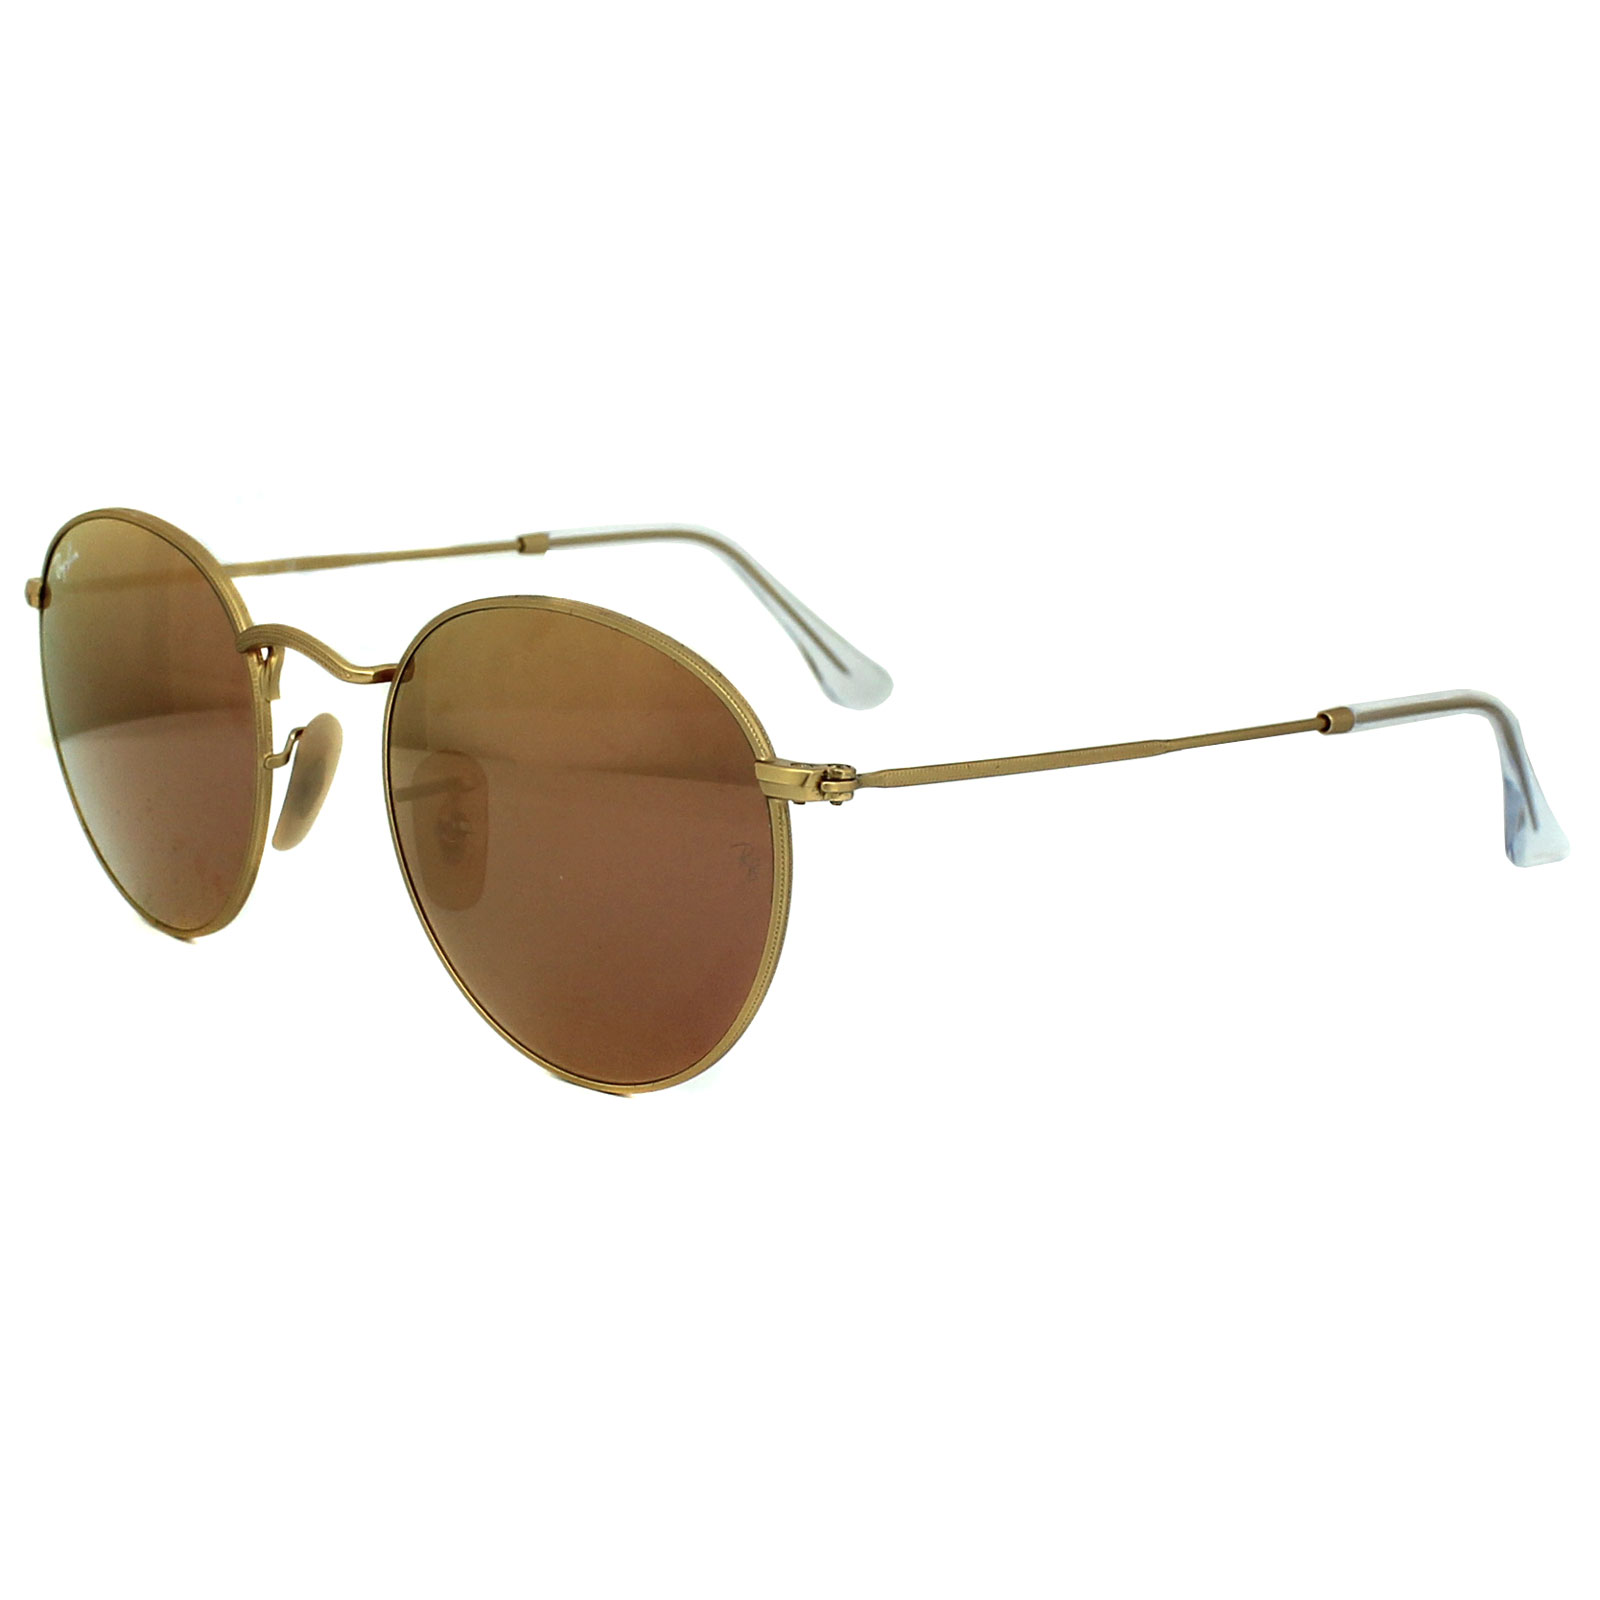 ray ban sunglasses round metal 3447 112 z2 gold copper. Black Bedroom Furniture Sets. Home Design Ideas